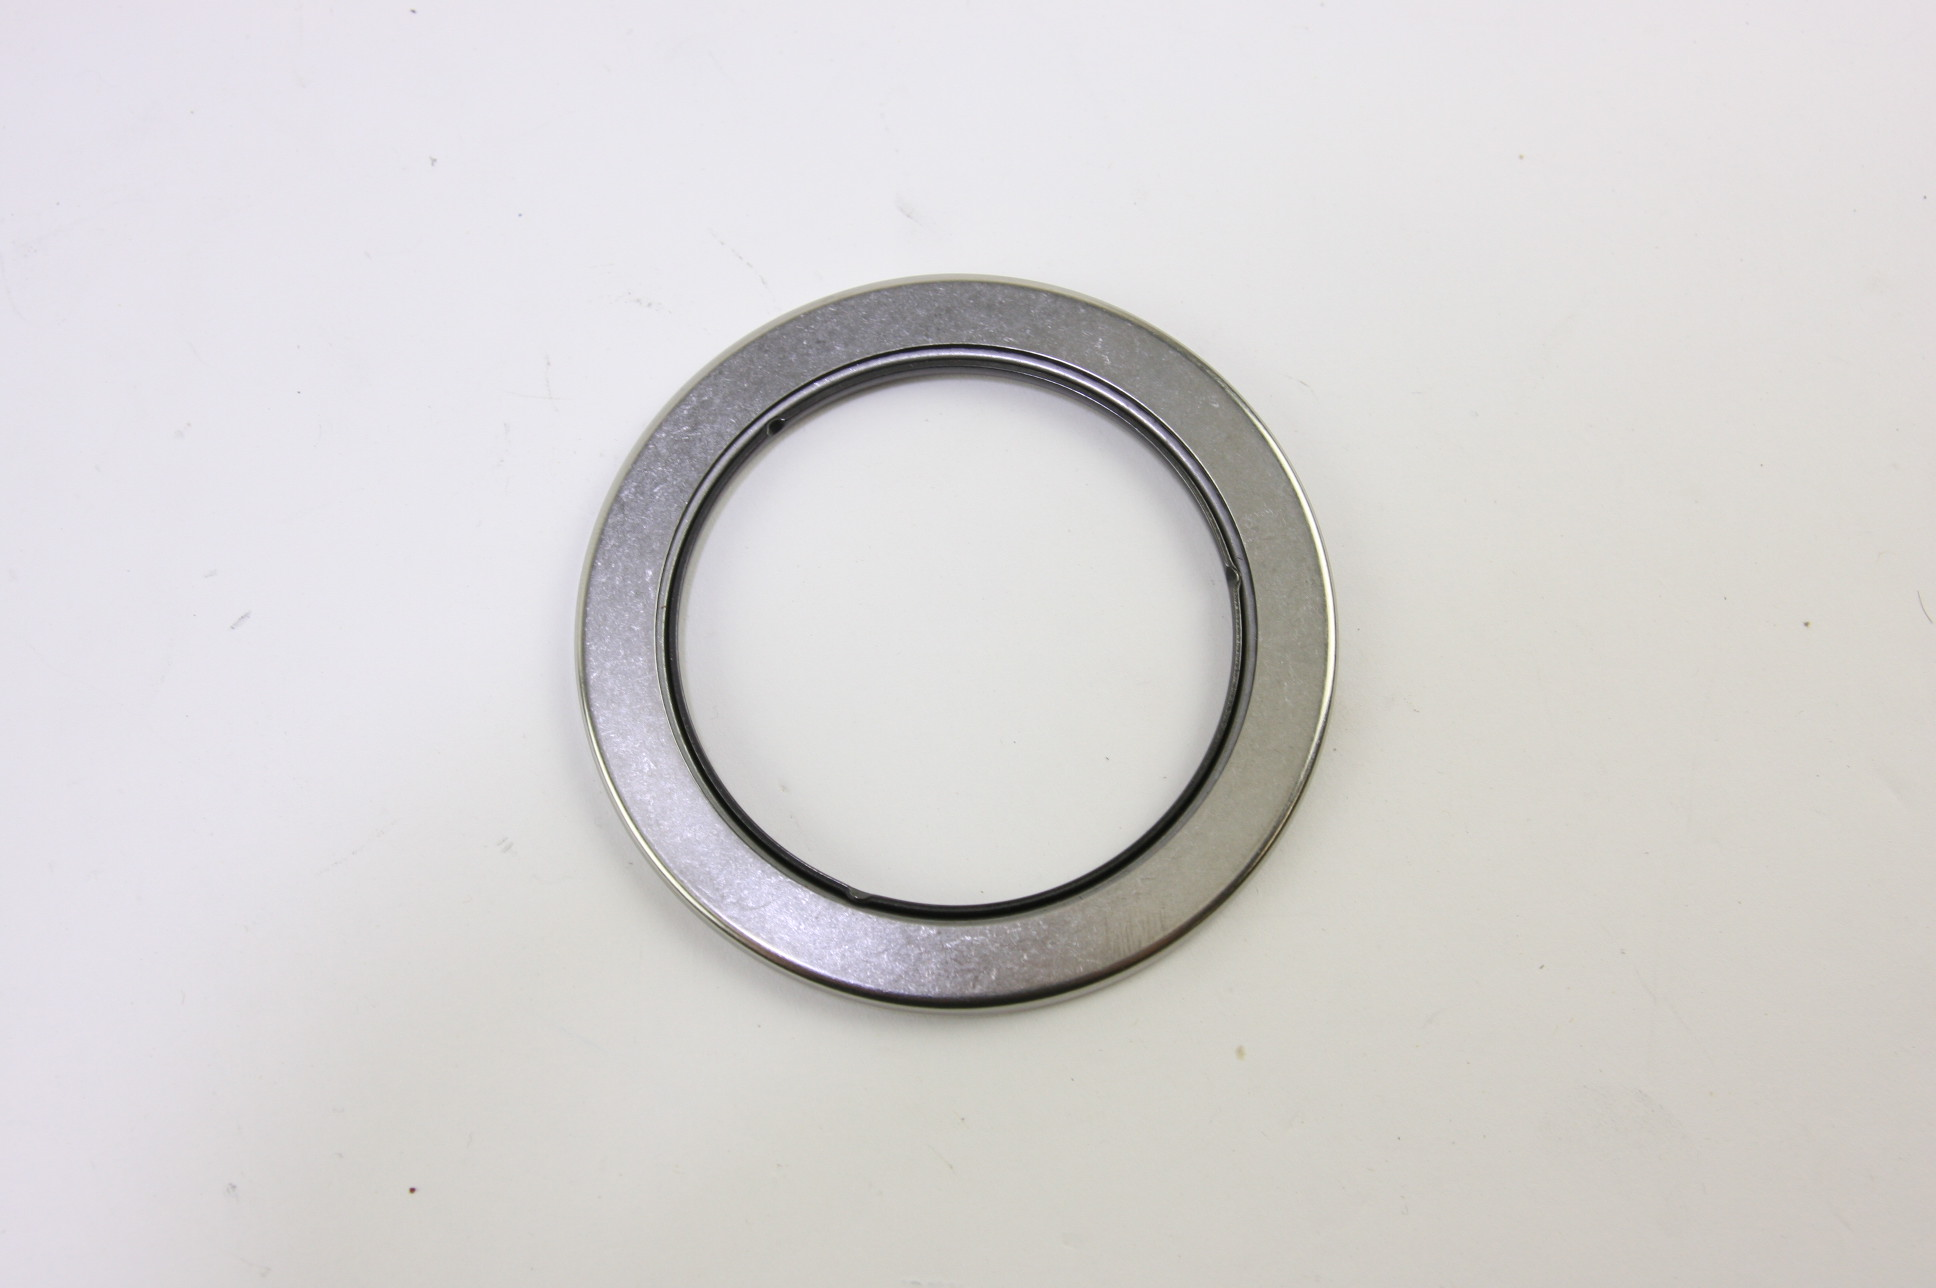 **~ New OEM 3C3Z7B368A Ford Transmission Bearing Case to Park Gear (w/o Lip) - image 4